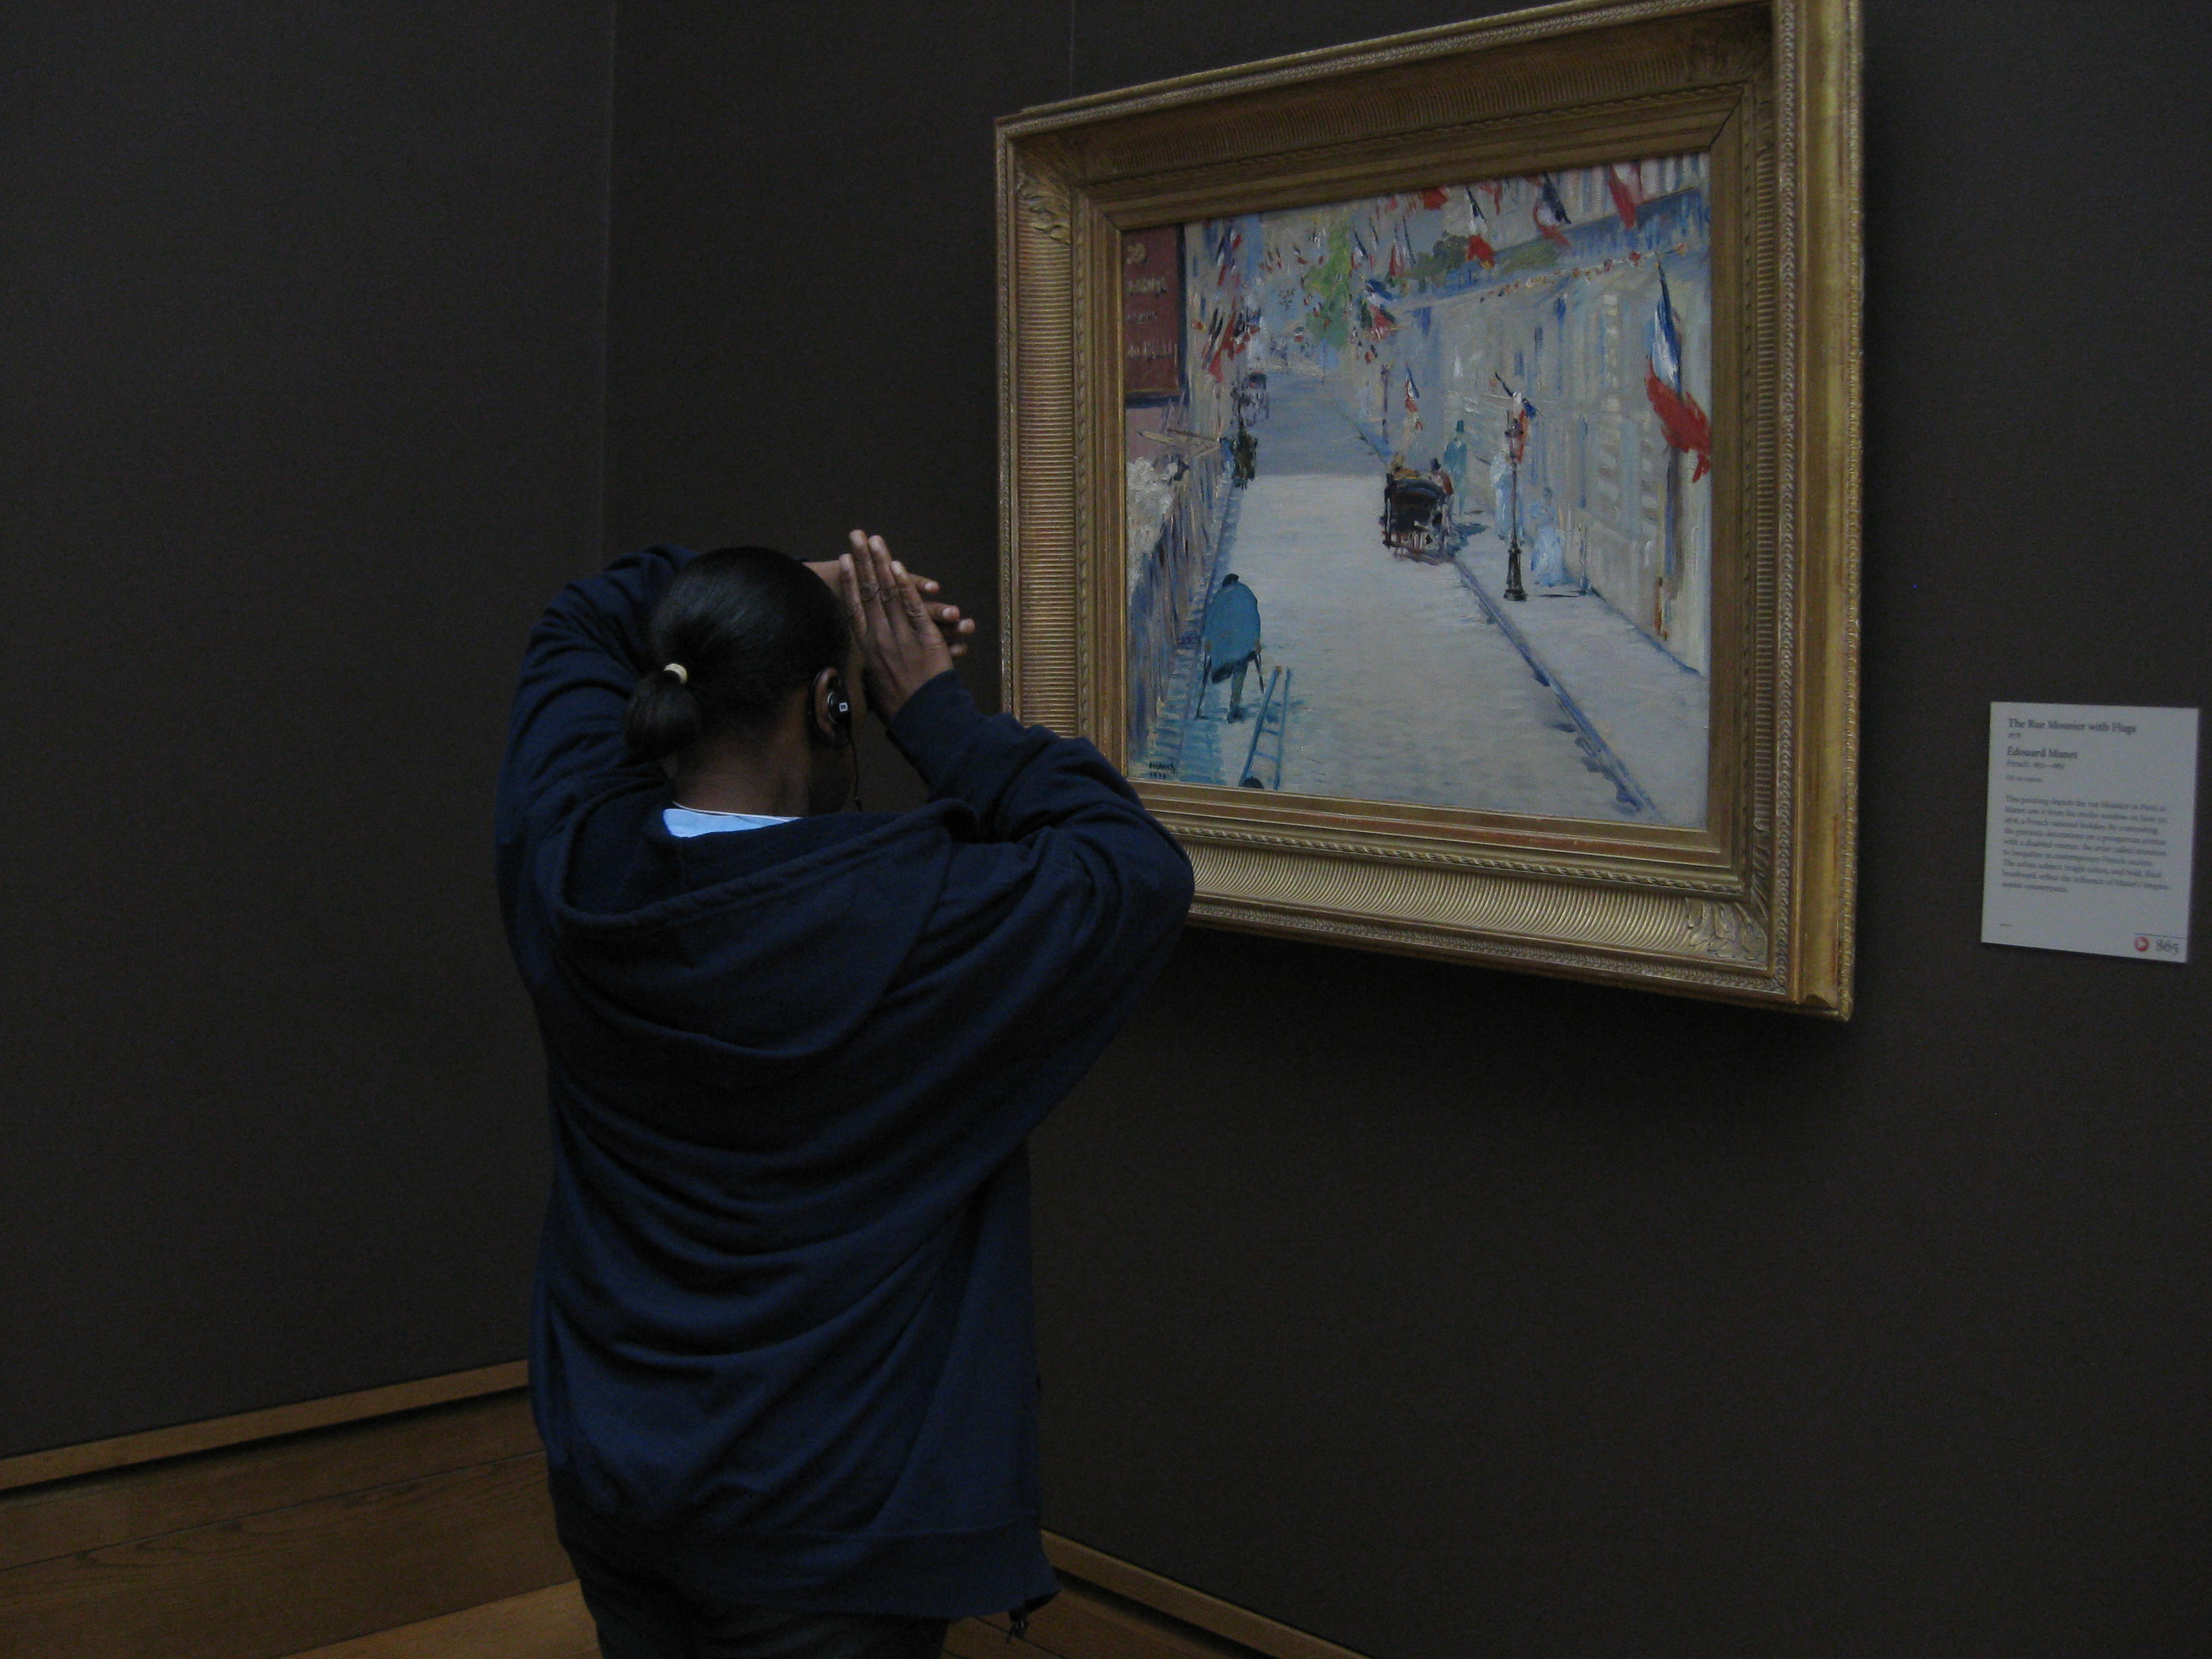 Using hands as a viewfinder, one teacher notices how a detail of Manet's painting was not created with just white paint alone, but several different colors.